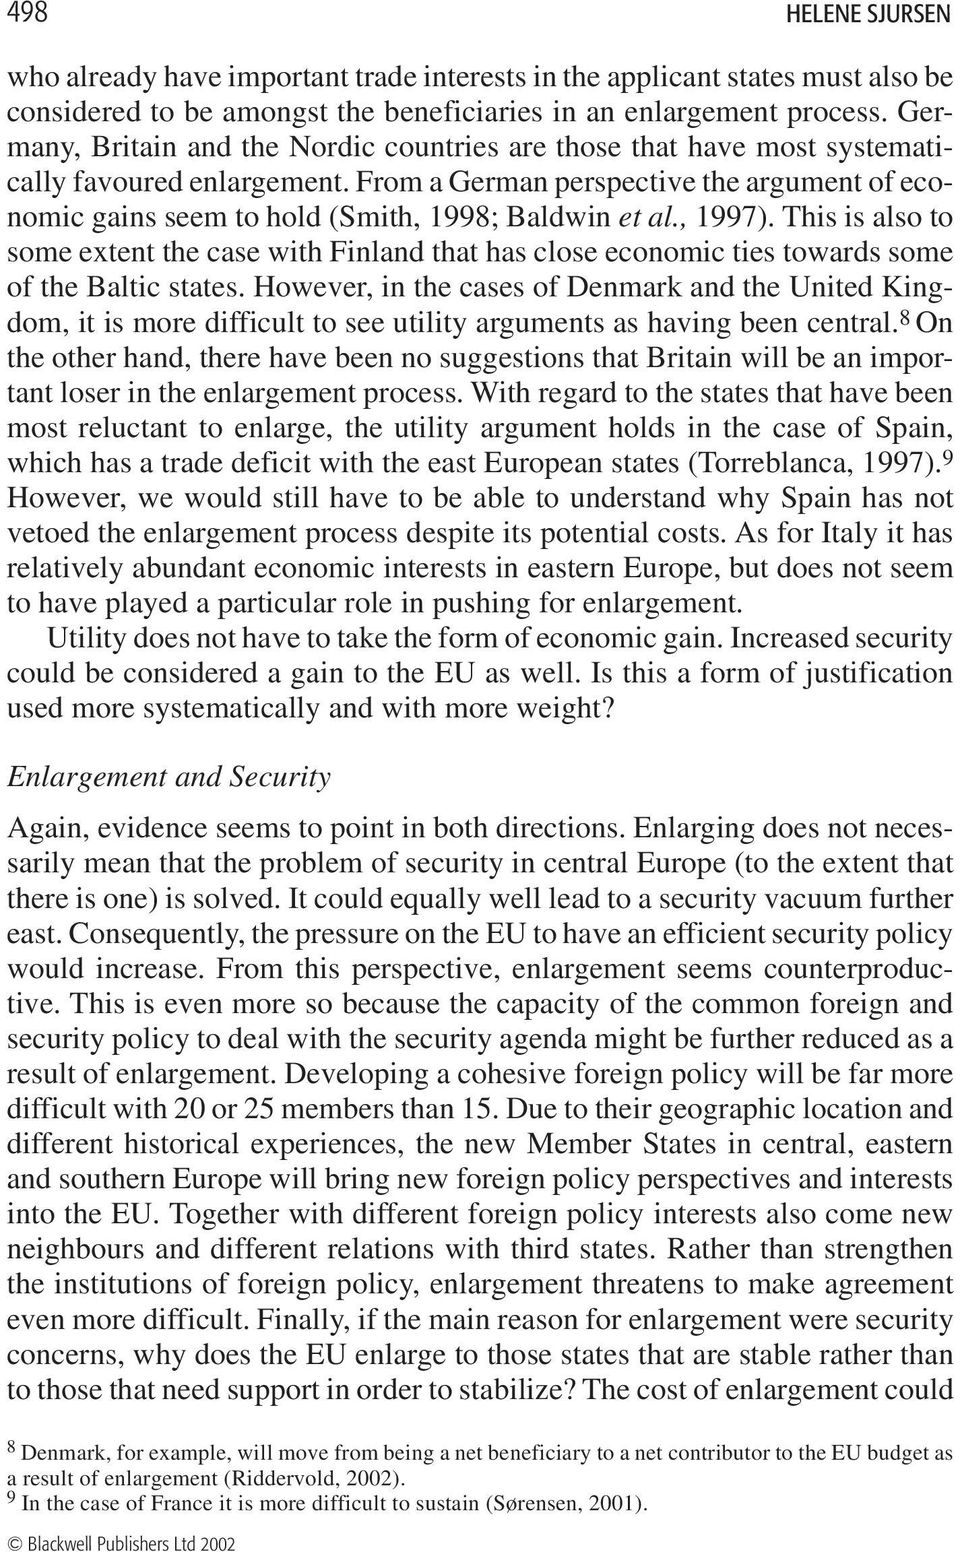 From a German perspective the argument of economic gains seem to hold (Smith, 1998; Baldwin et al., 1997).